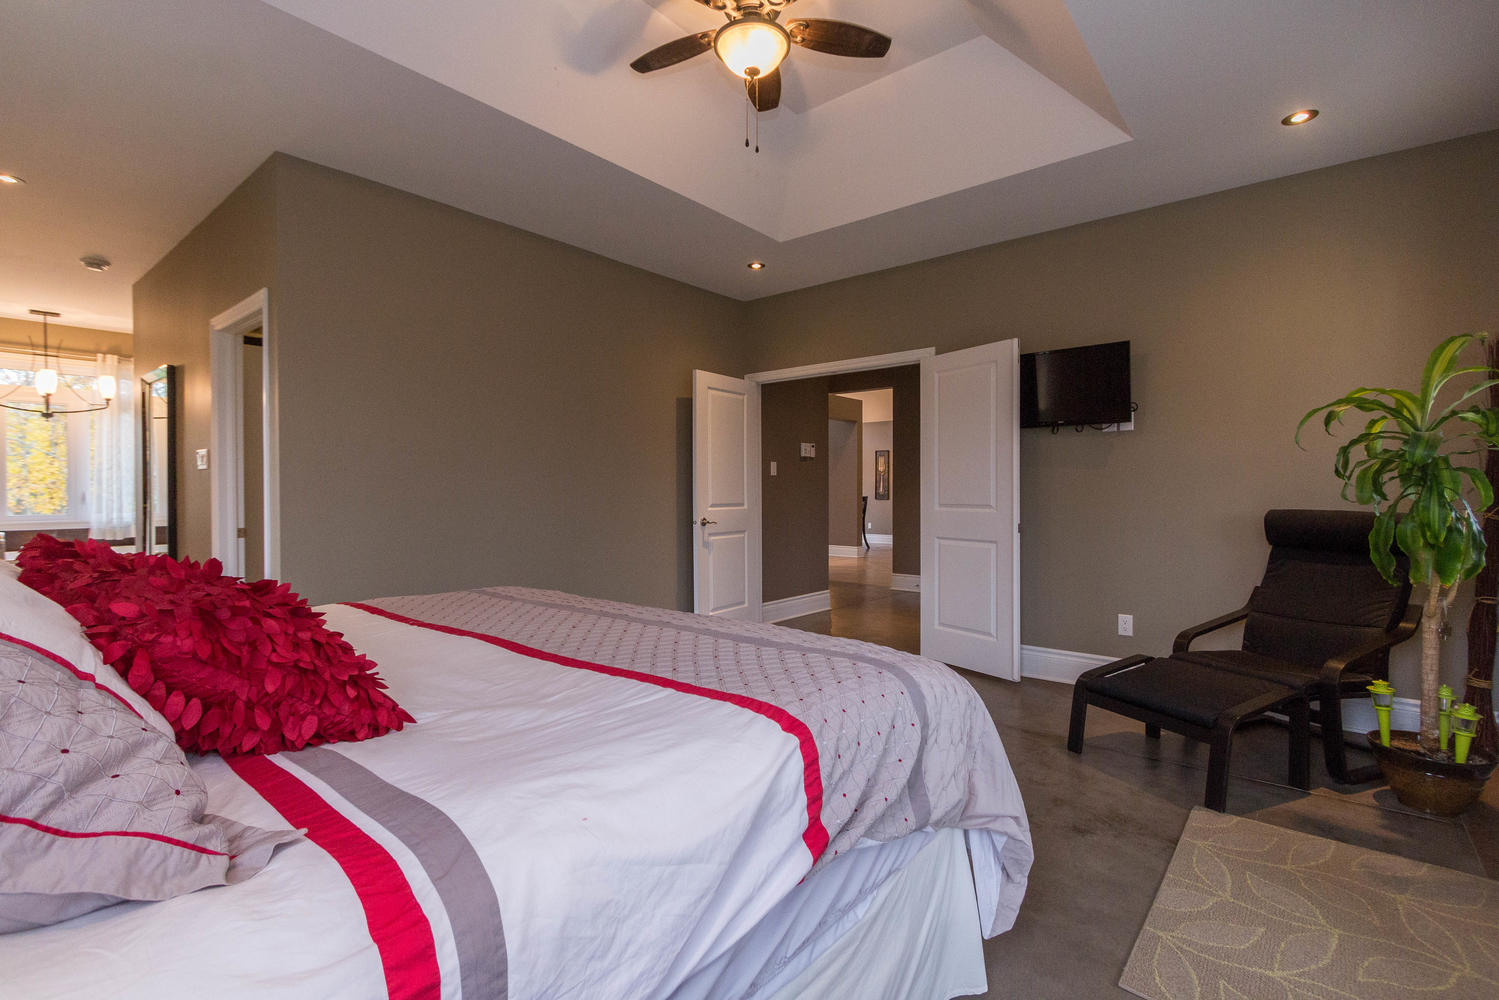 A master bedroom that will blow you away!  Very spacious to fit any bedroom set you have, Double doors leading out to the covered back deck(Hot tub in the future?) two large walk in closets, and a master ensuite with large soaker Jacuzzi tub and walk in tiled shower with his and her showers.